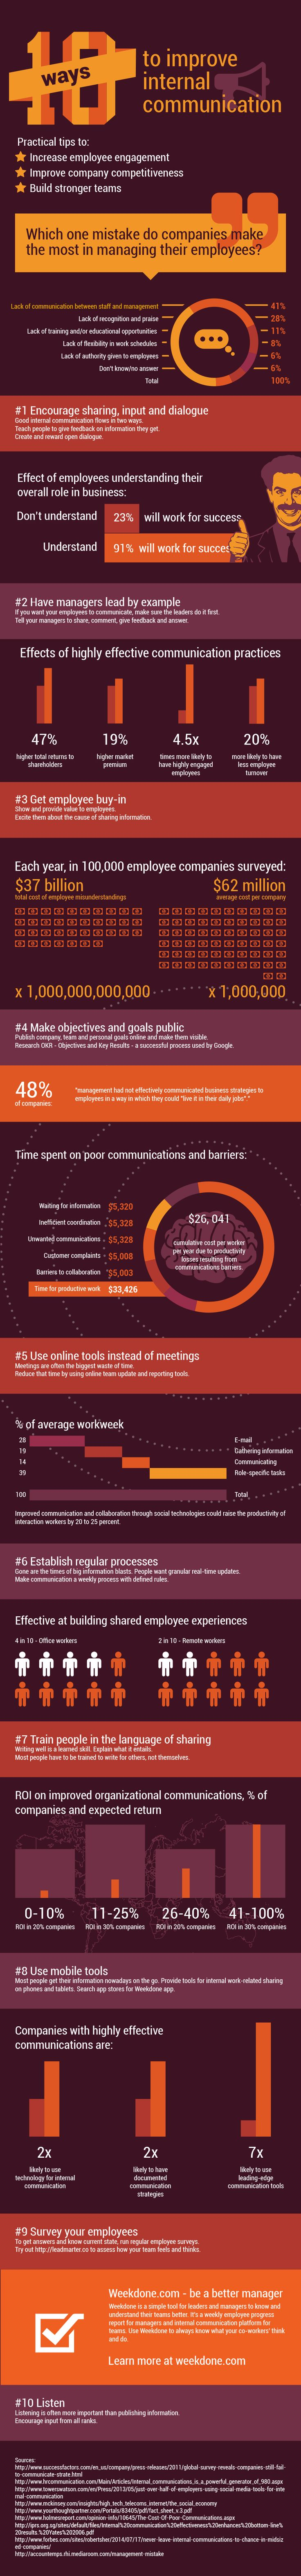 10 Ways to Improve Internal Communication (Infographic) | Inc.com